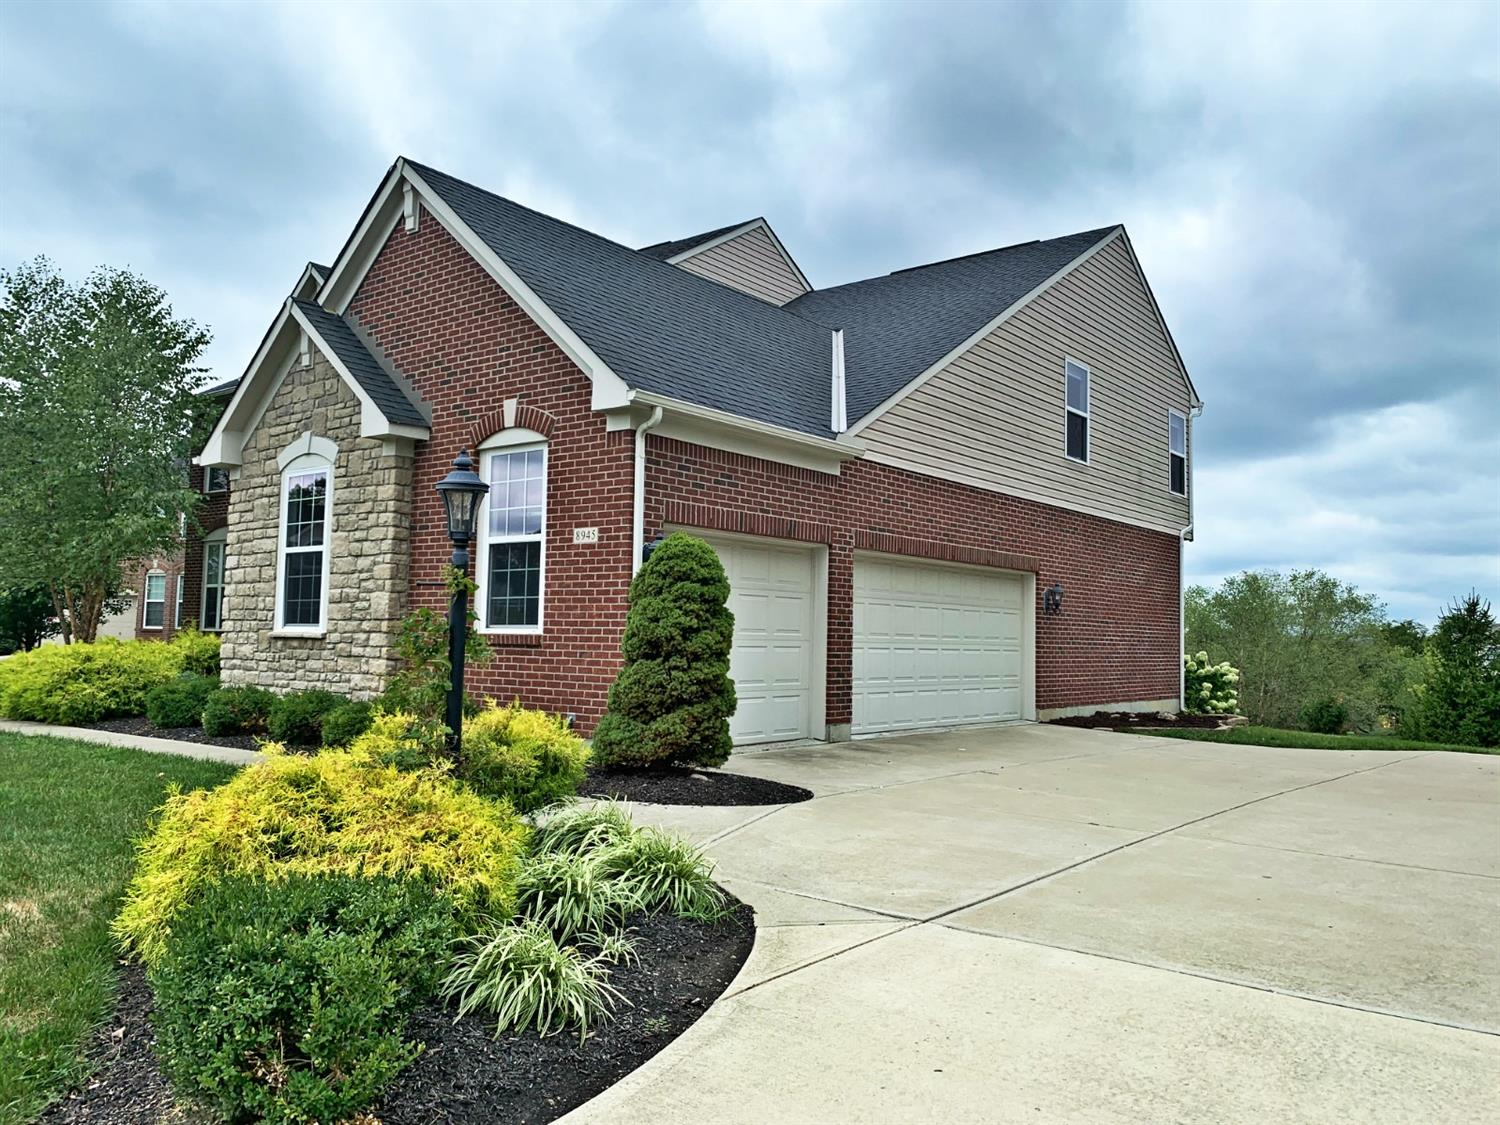 Photo 2 for 8945 Heather Ann Dr West Chester - East, OH 45069